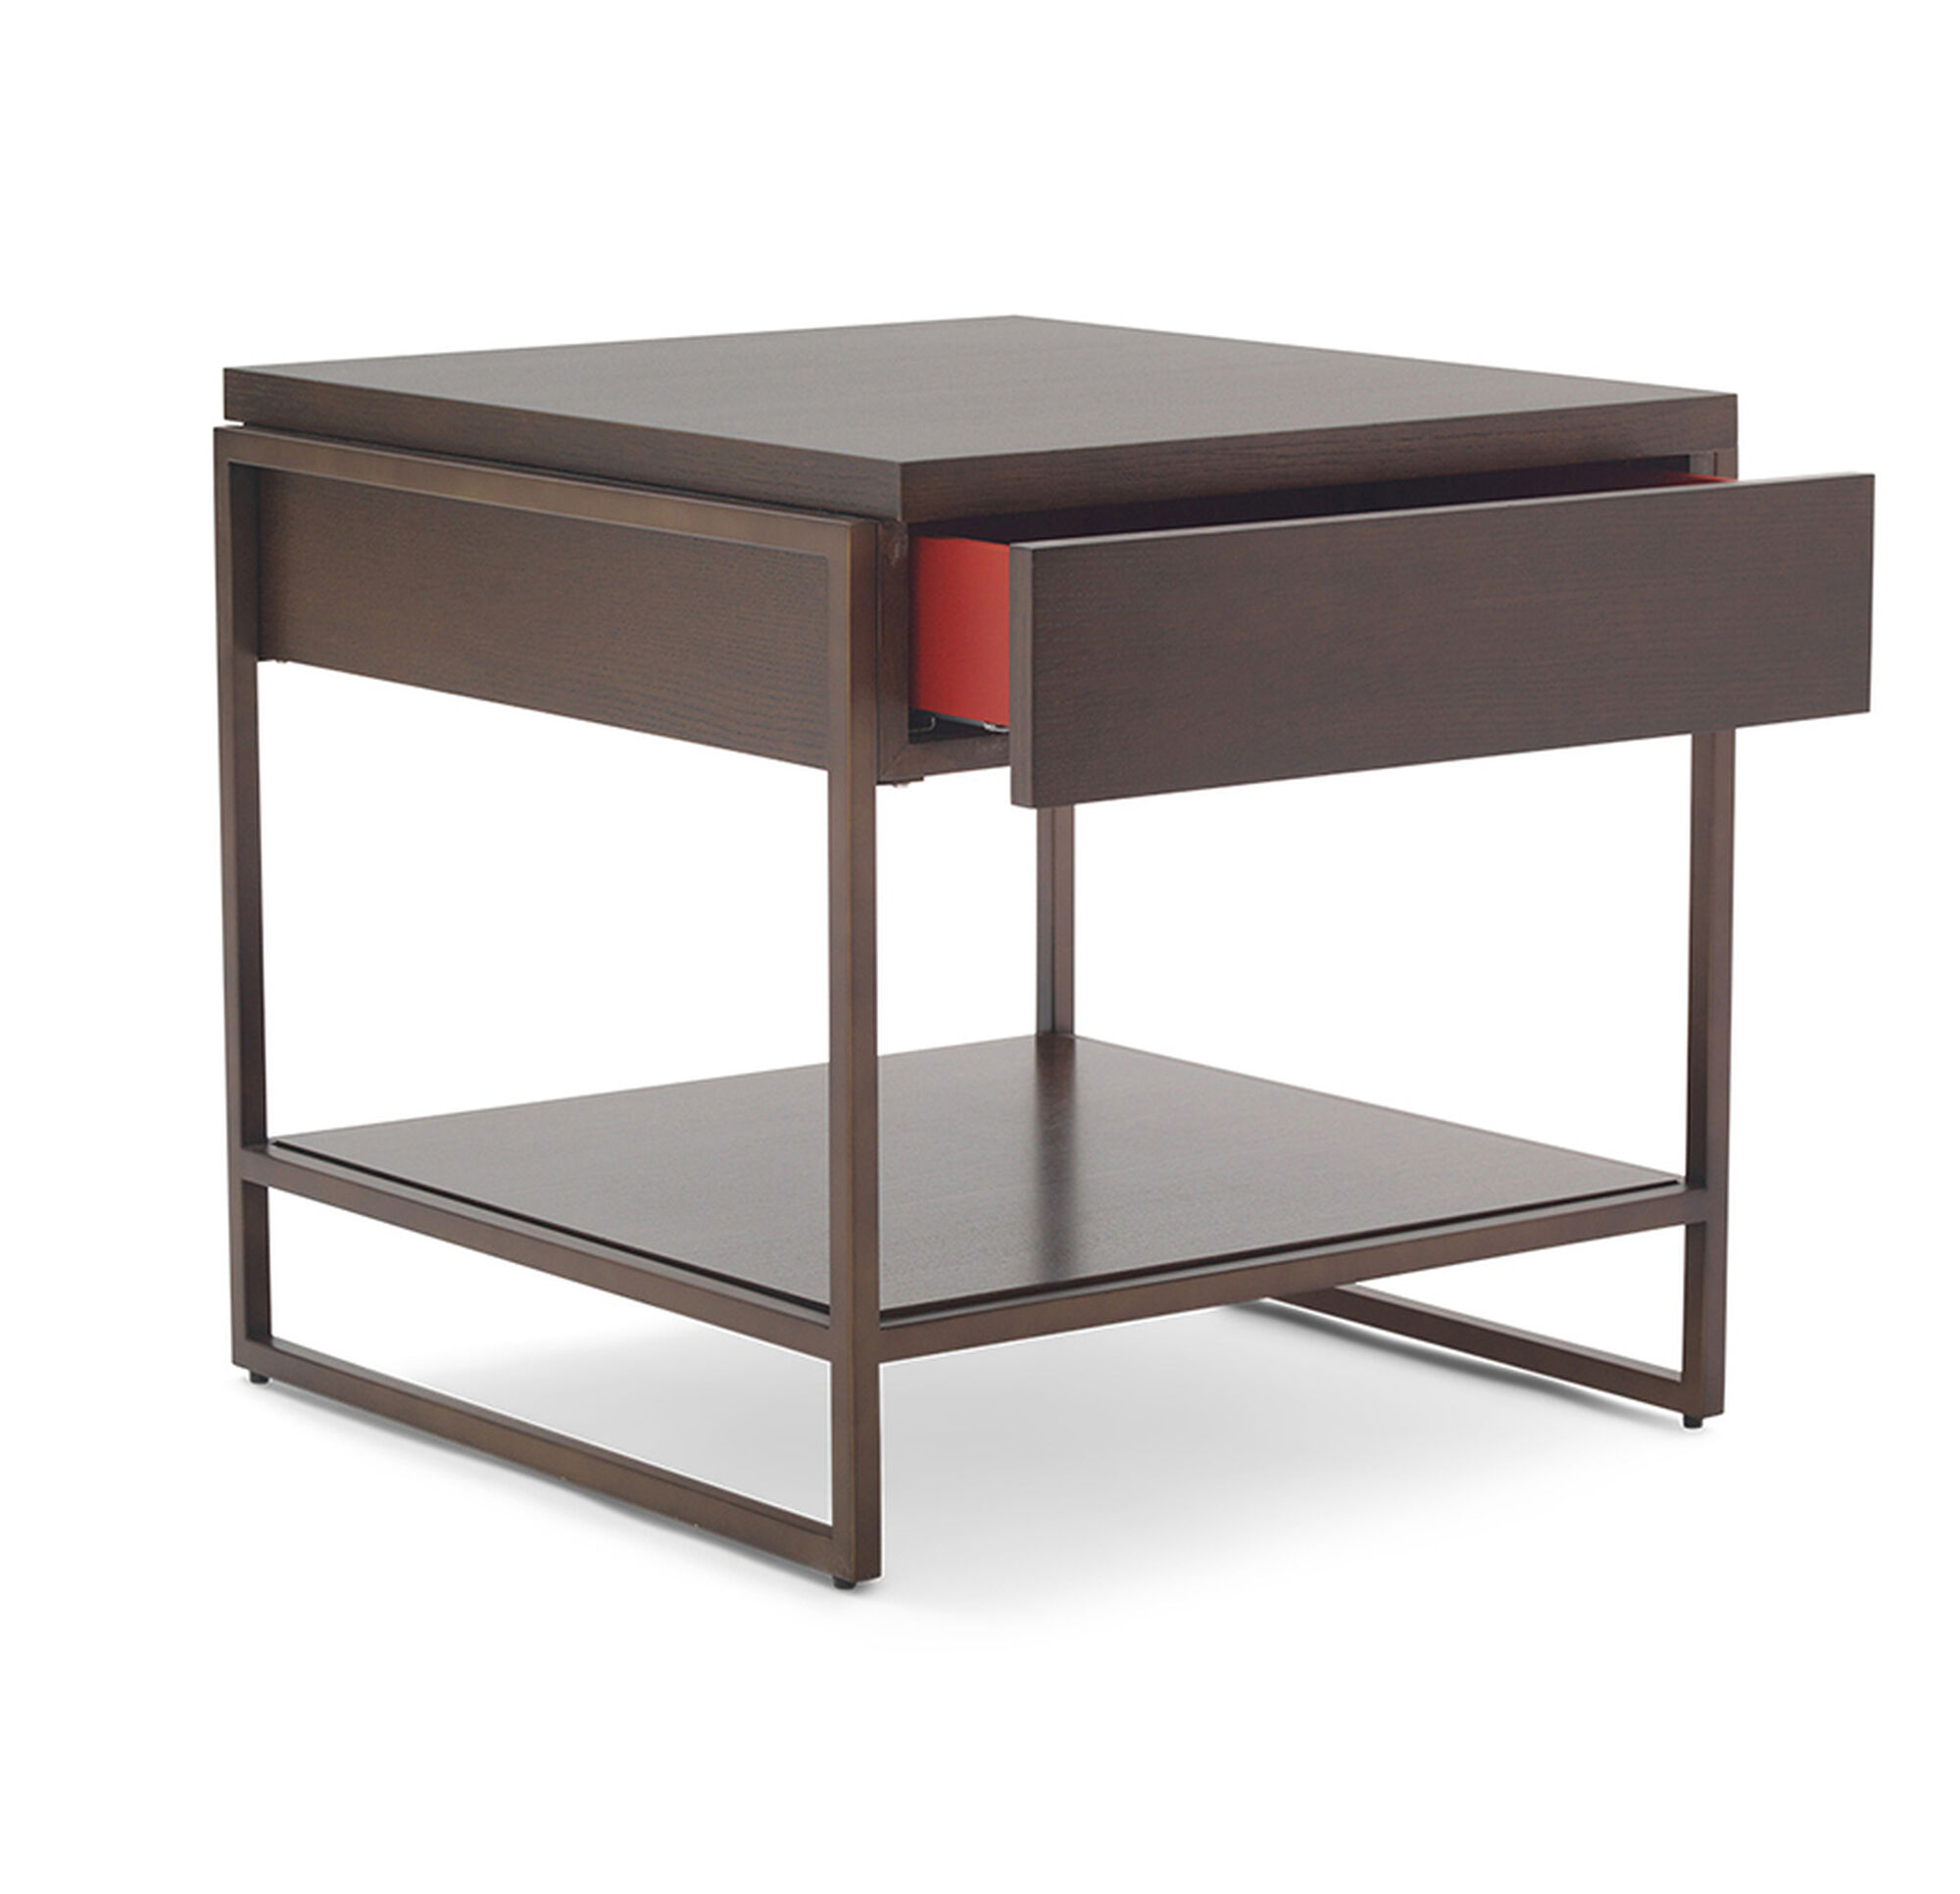 BASSEY DRAWER SIDE TABLE - Metal table with shelves